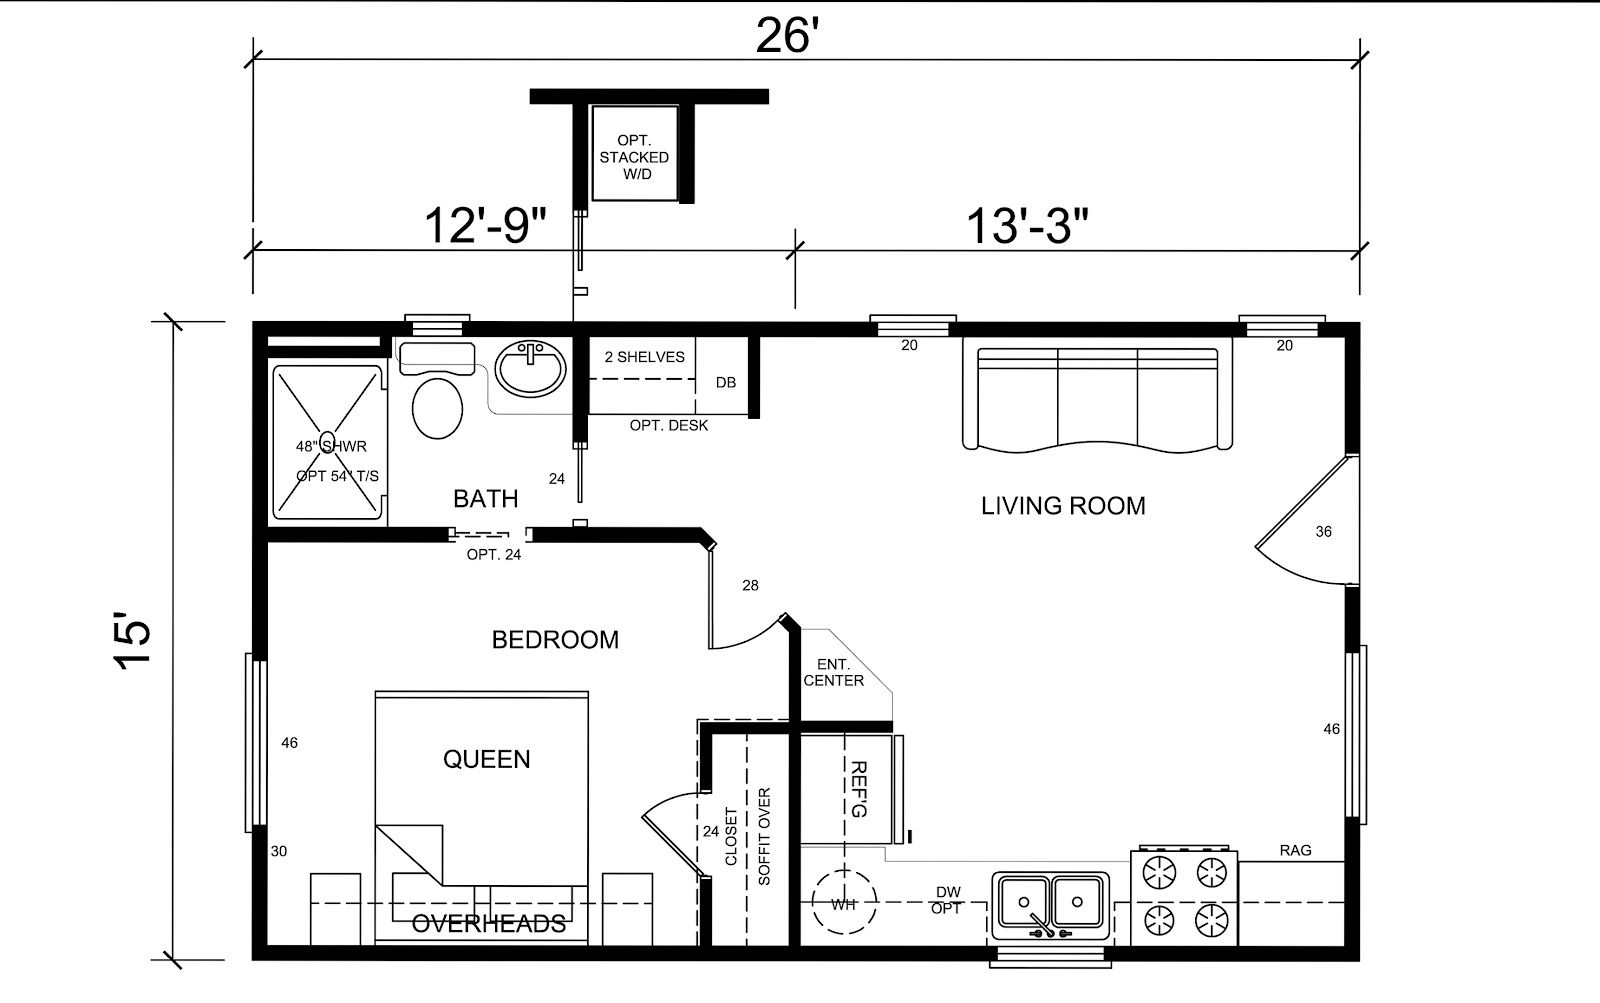 Pin By Raimix007 On House Planning In 2020 Guest House Plans Floor Plans Small House Plans